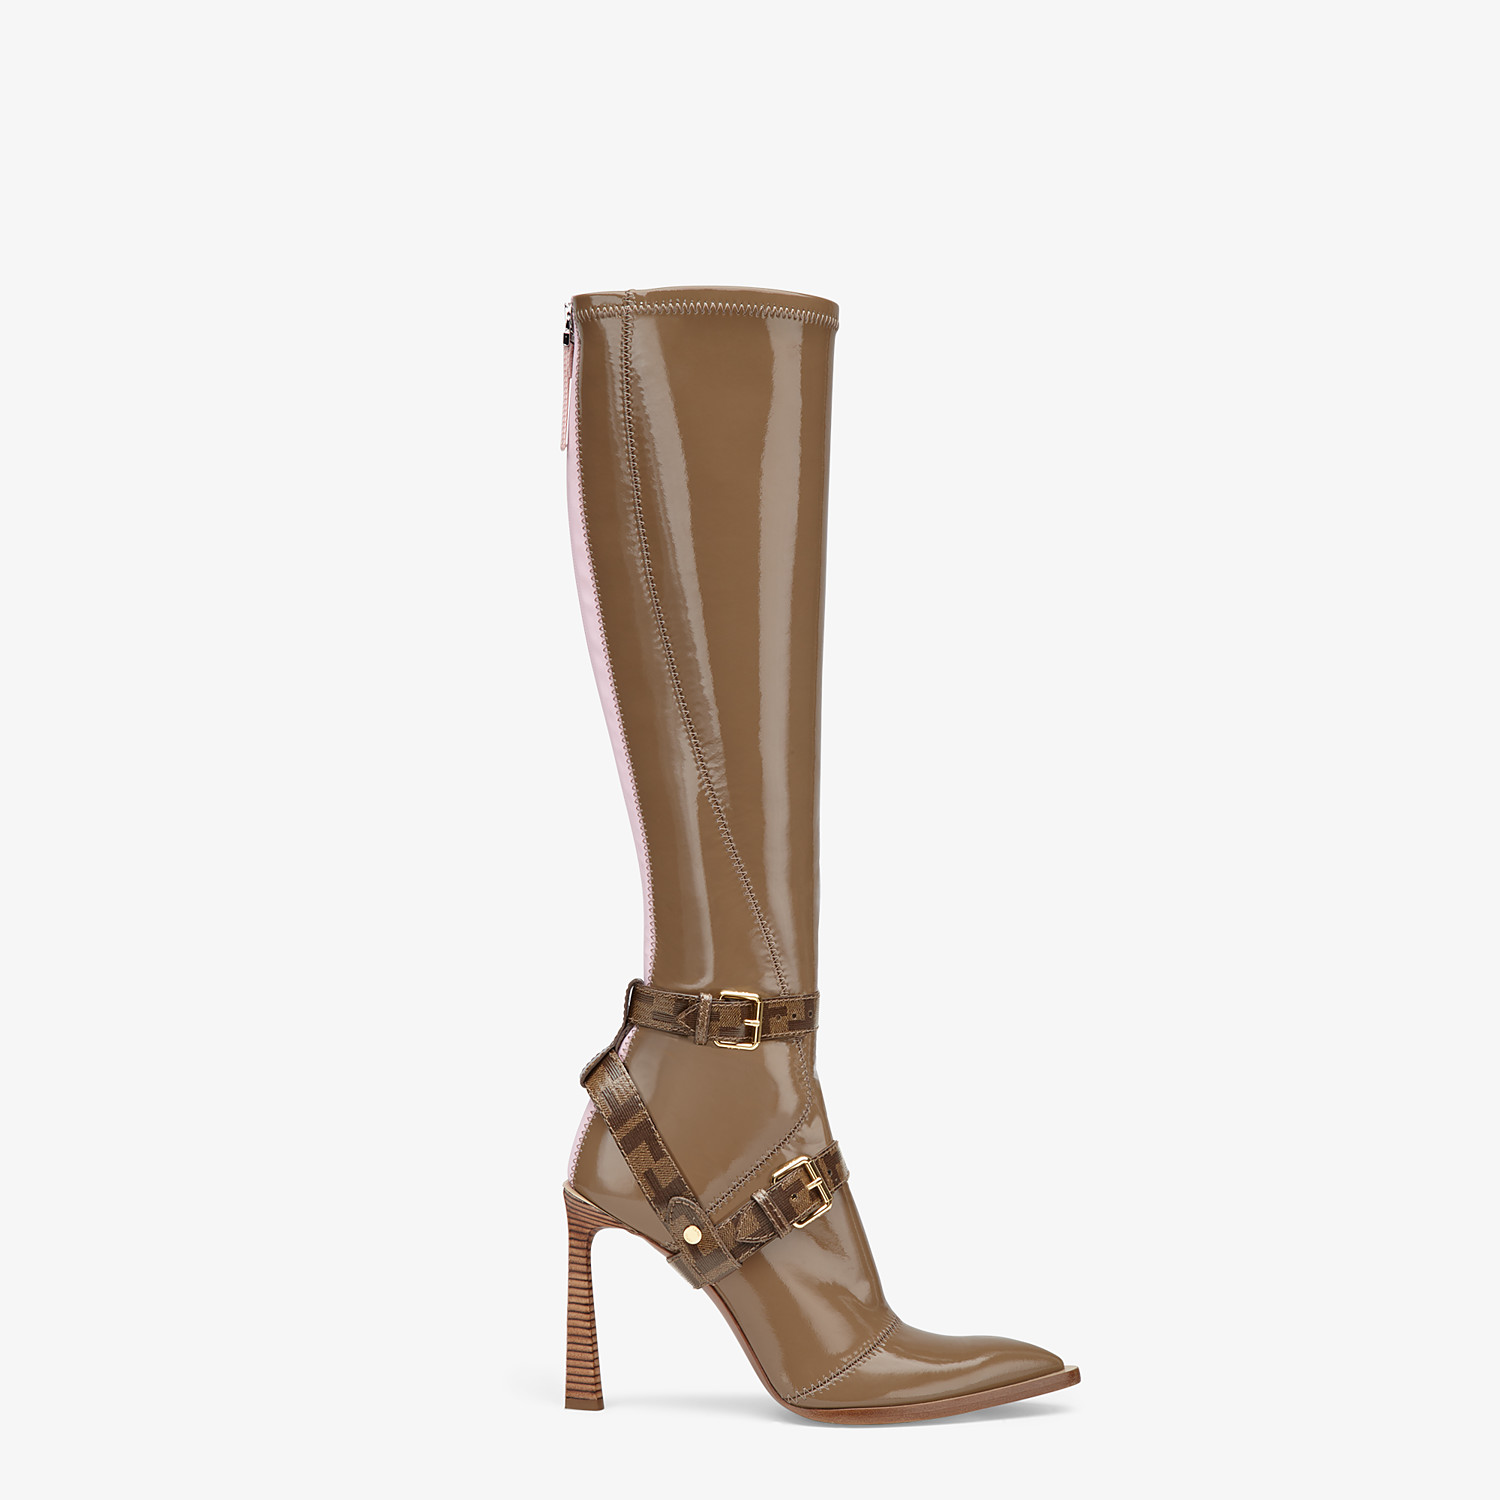 FENDI BOOTS - Glossy beige neoprene boots - view 1 detail